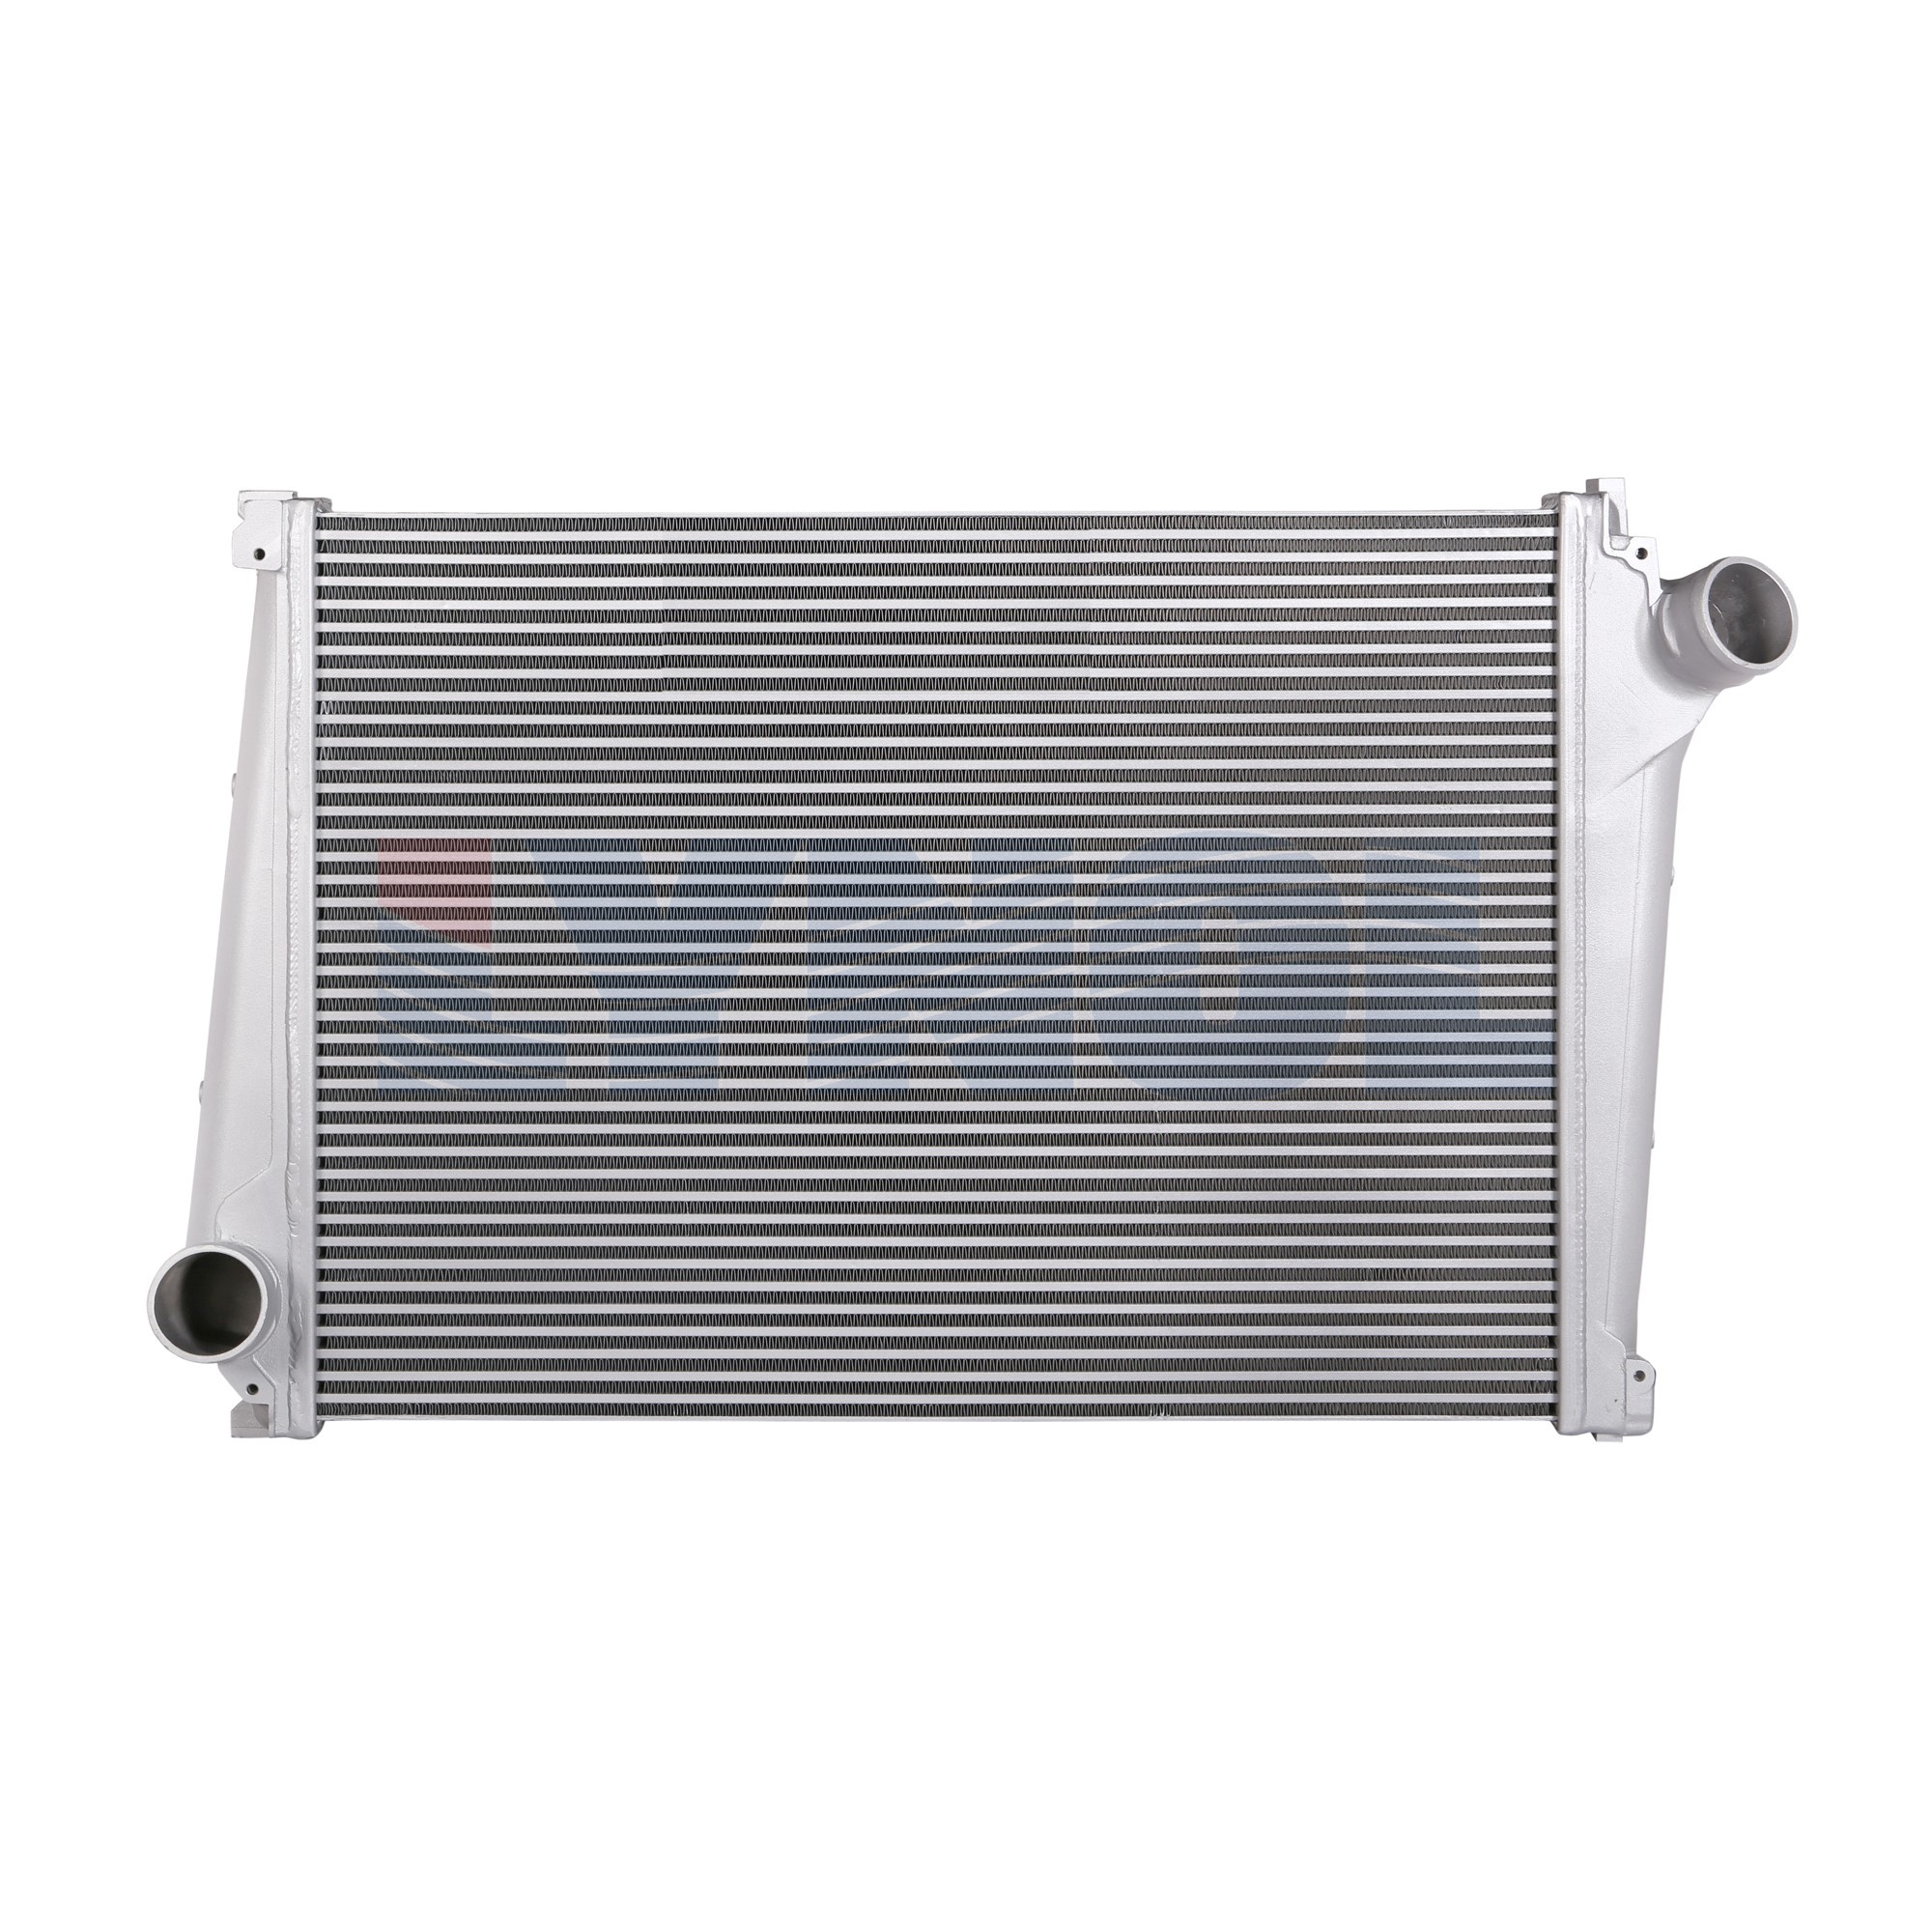 2413-005 - Mack Charge Air Cooler